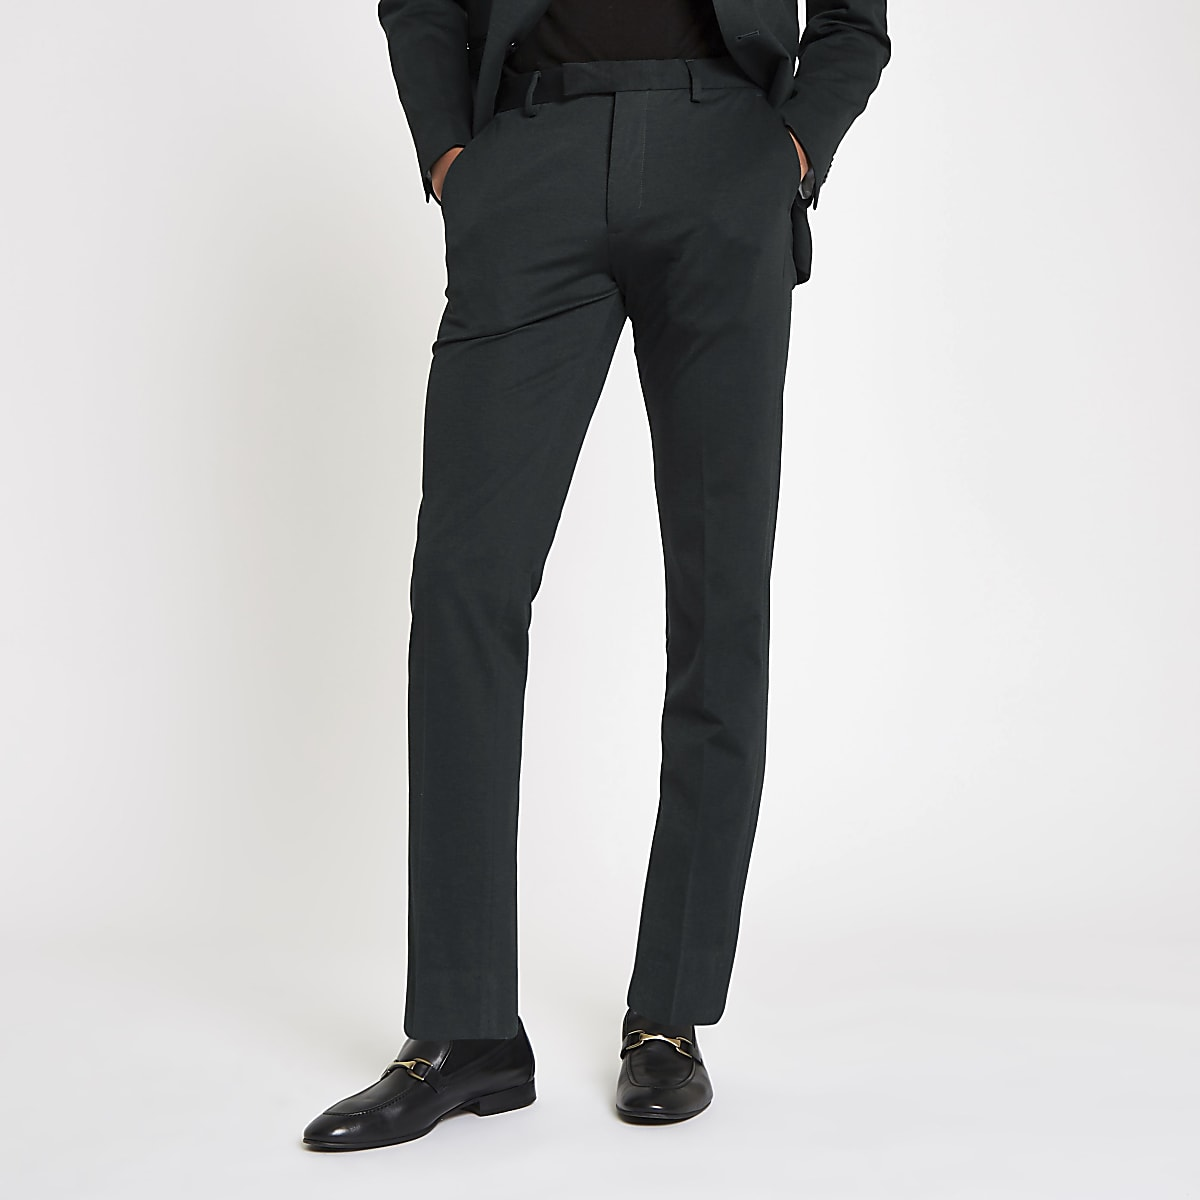 Jack & Jones - Groene slim-fit pantalon